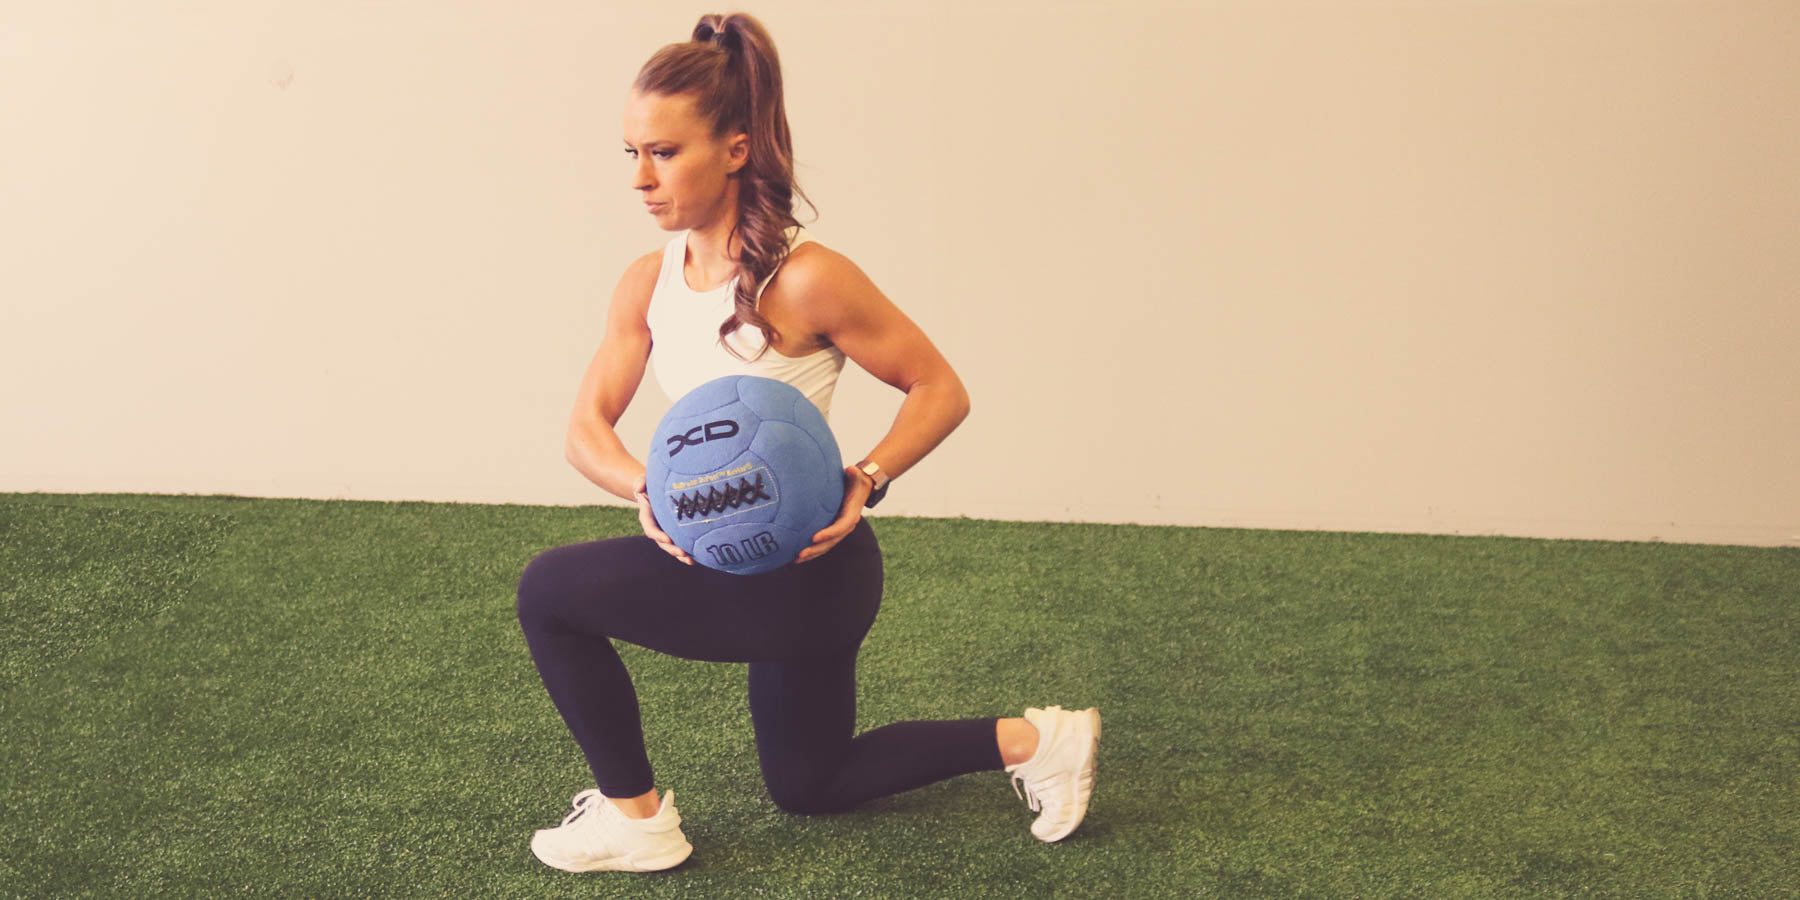 Medicine ball exercise with Blue Medicine Ball